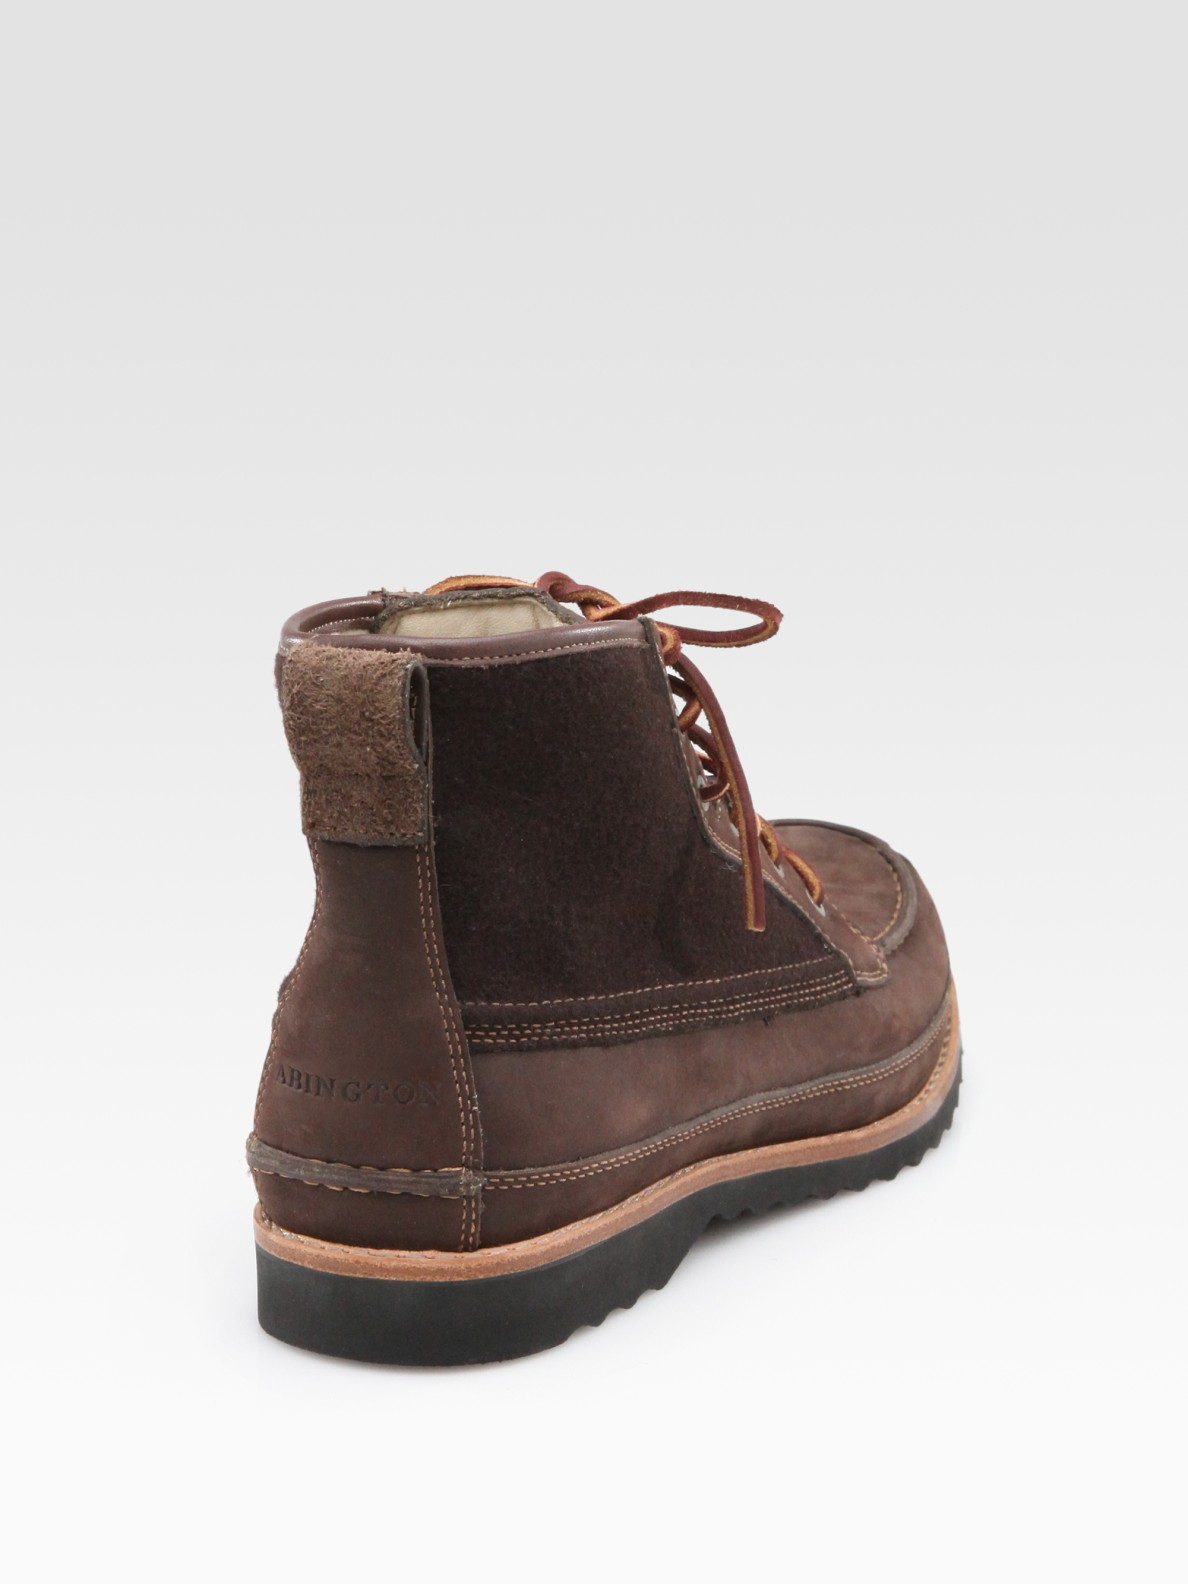 Timberland Abington Moccasin Boots In Brown For Men Lyst